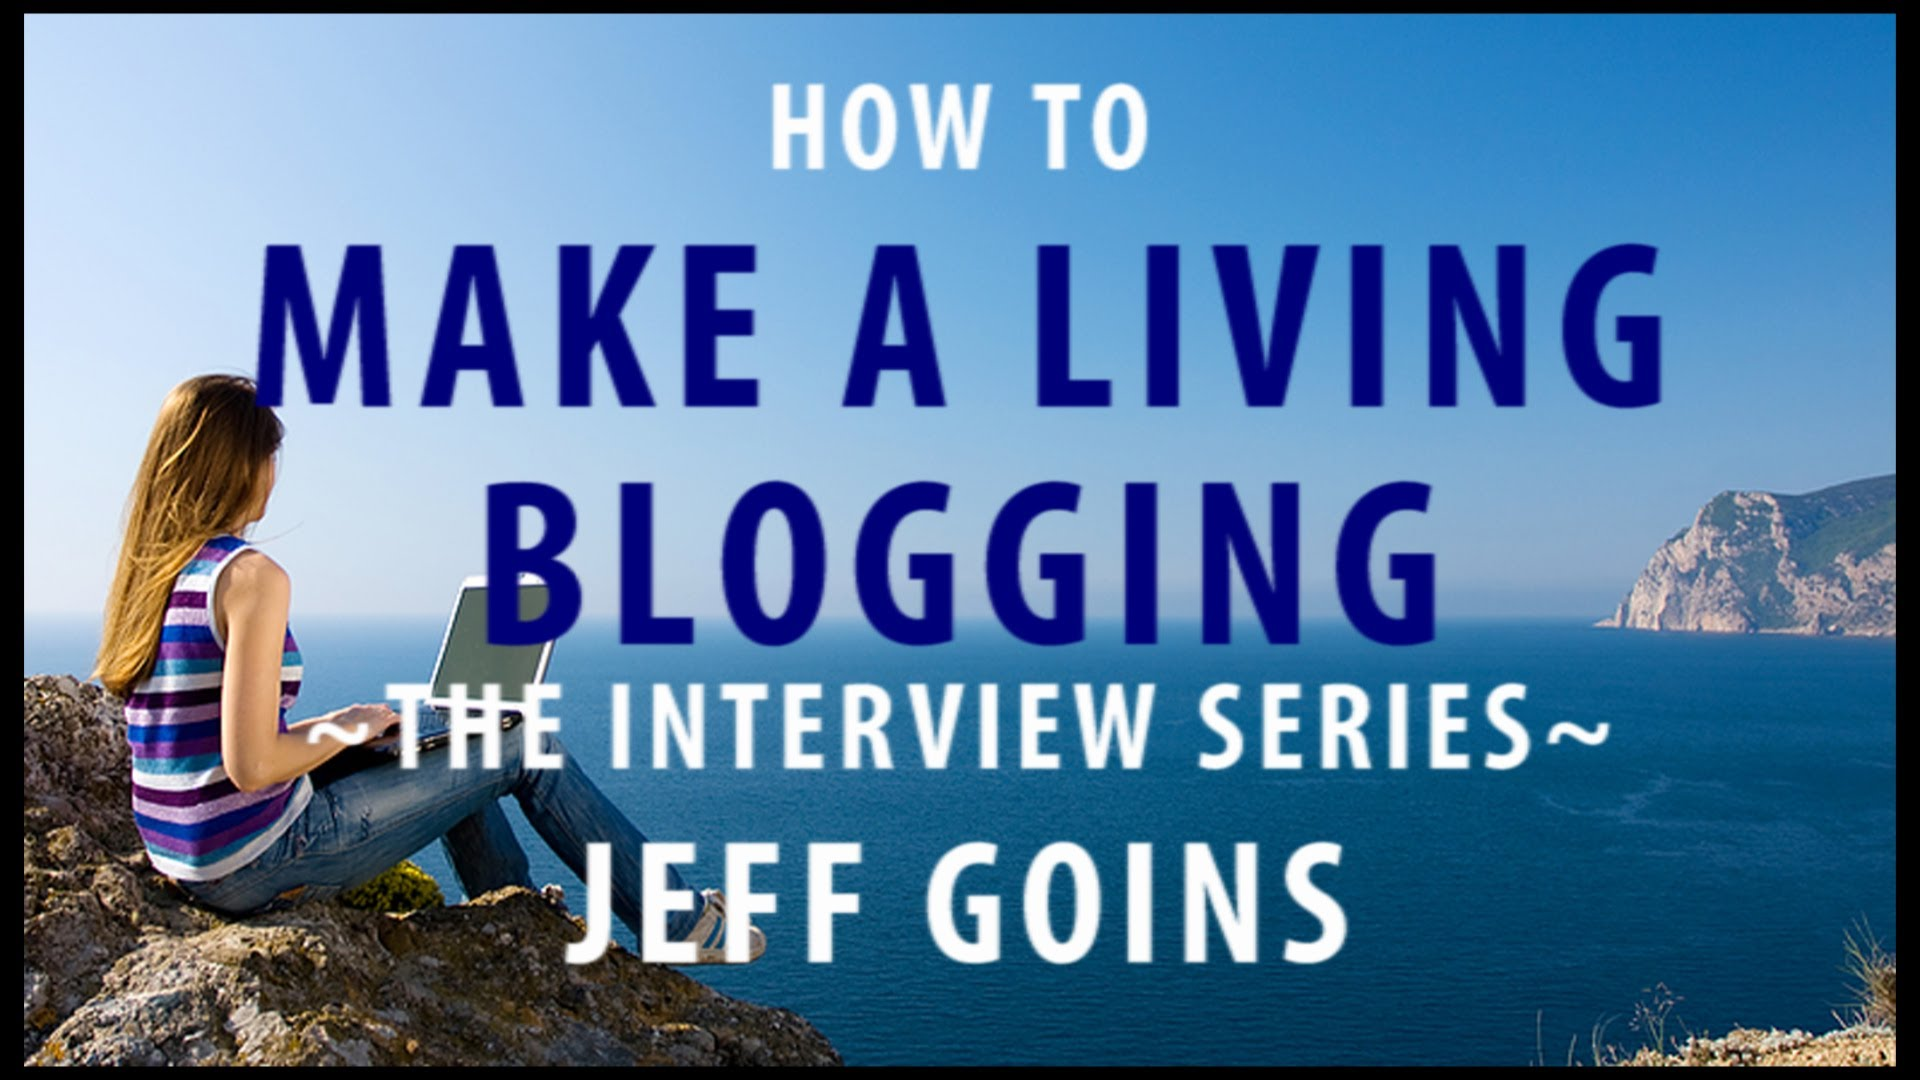 How to Make A Living Blogging interview – Jeff Goins